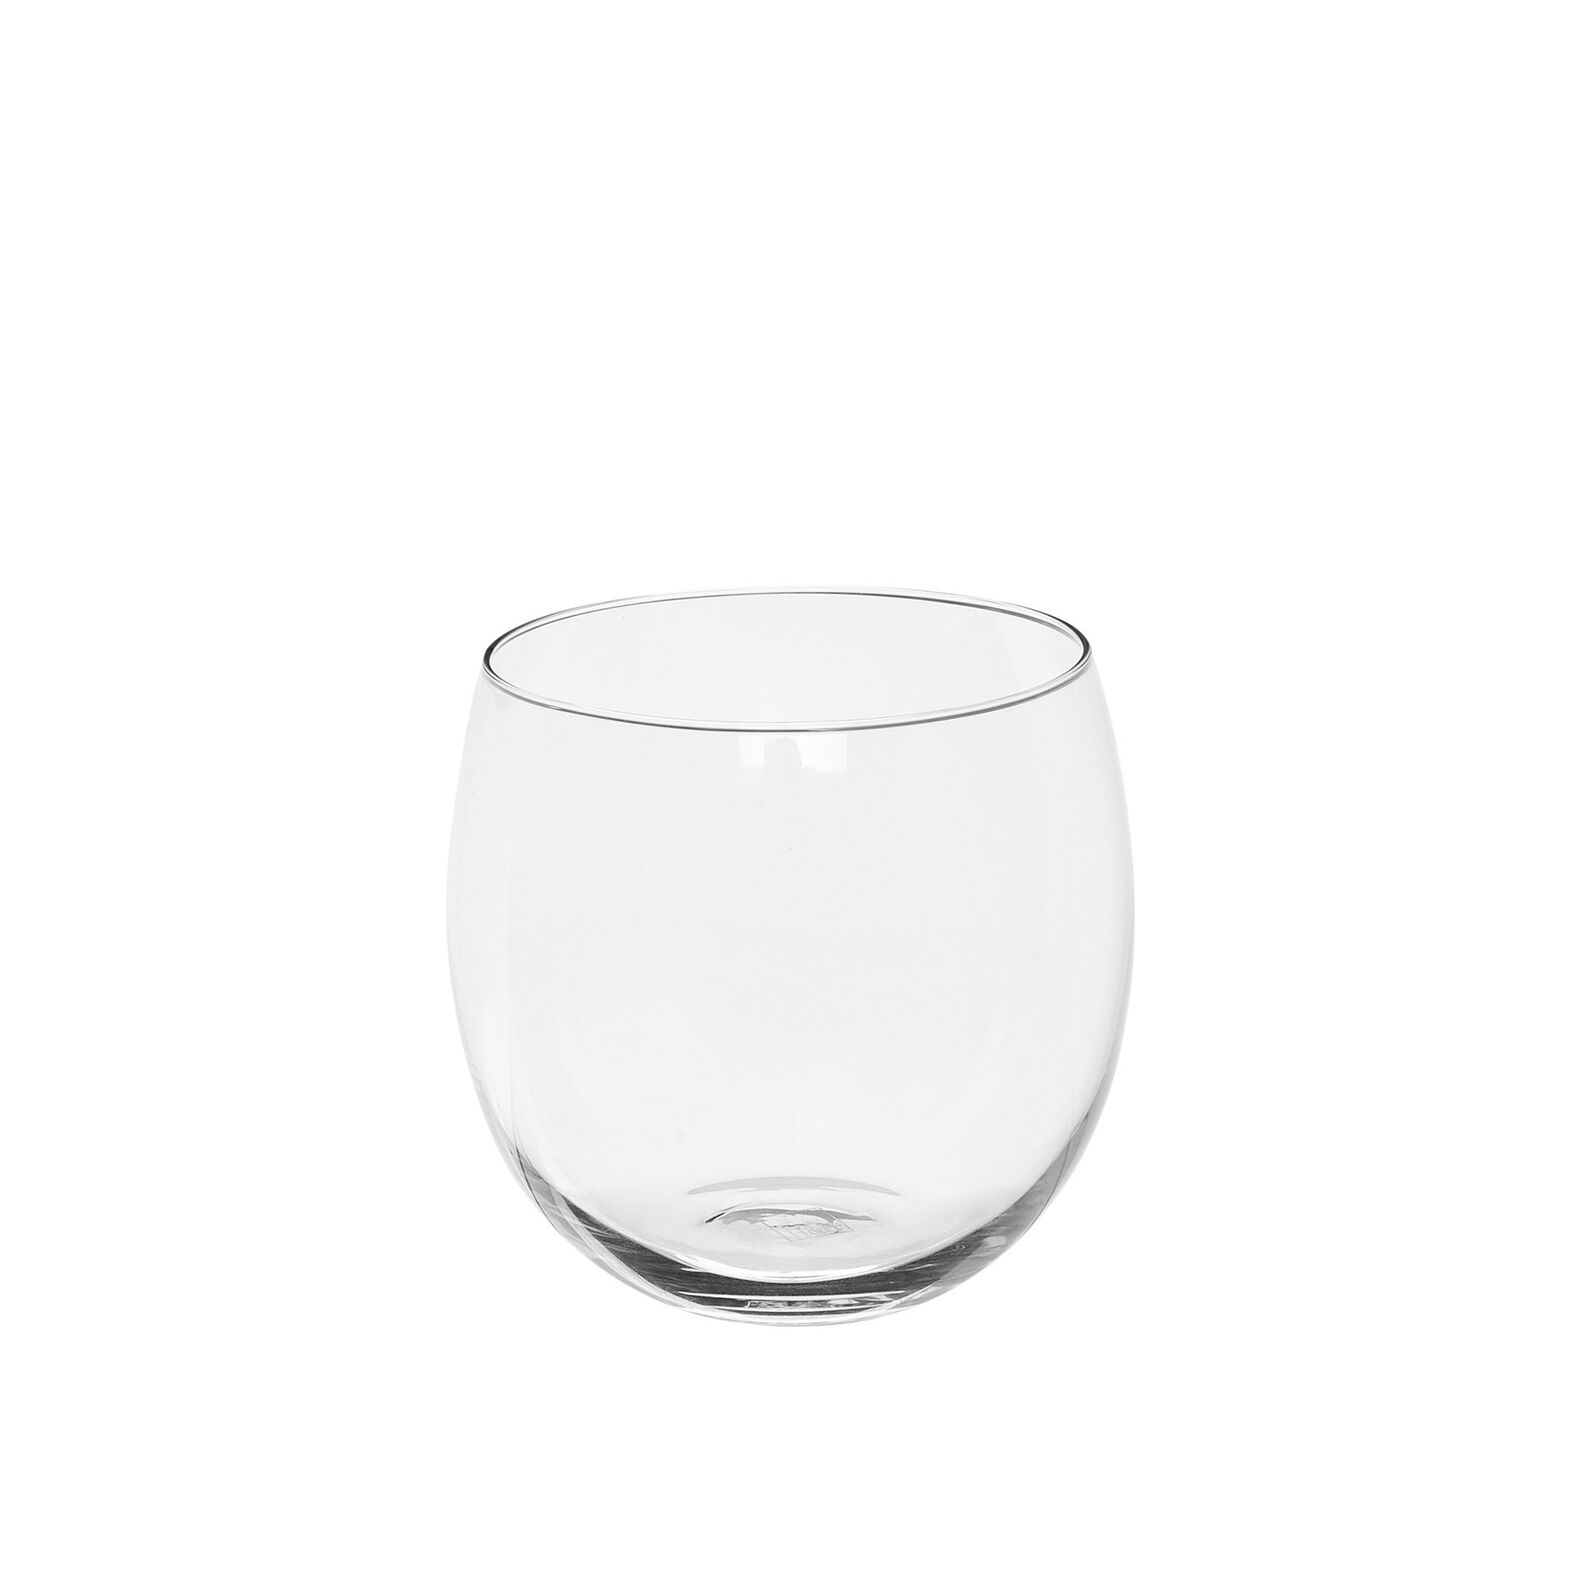 Set of 6 Bubbly wine glasses